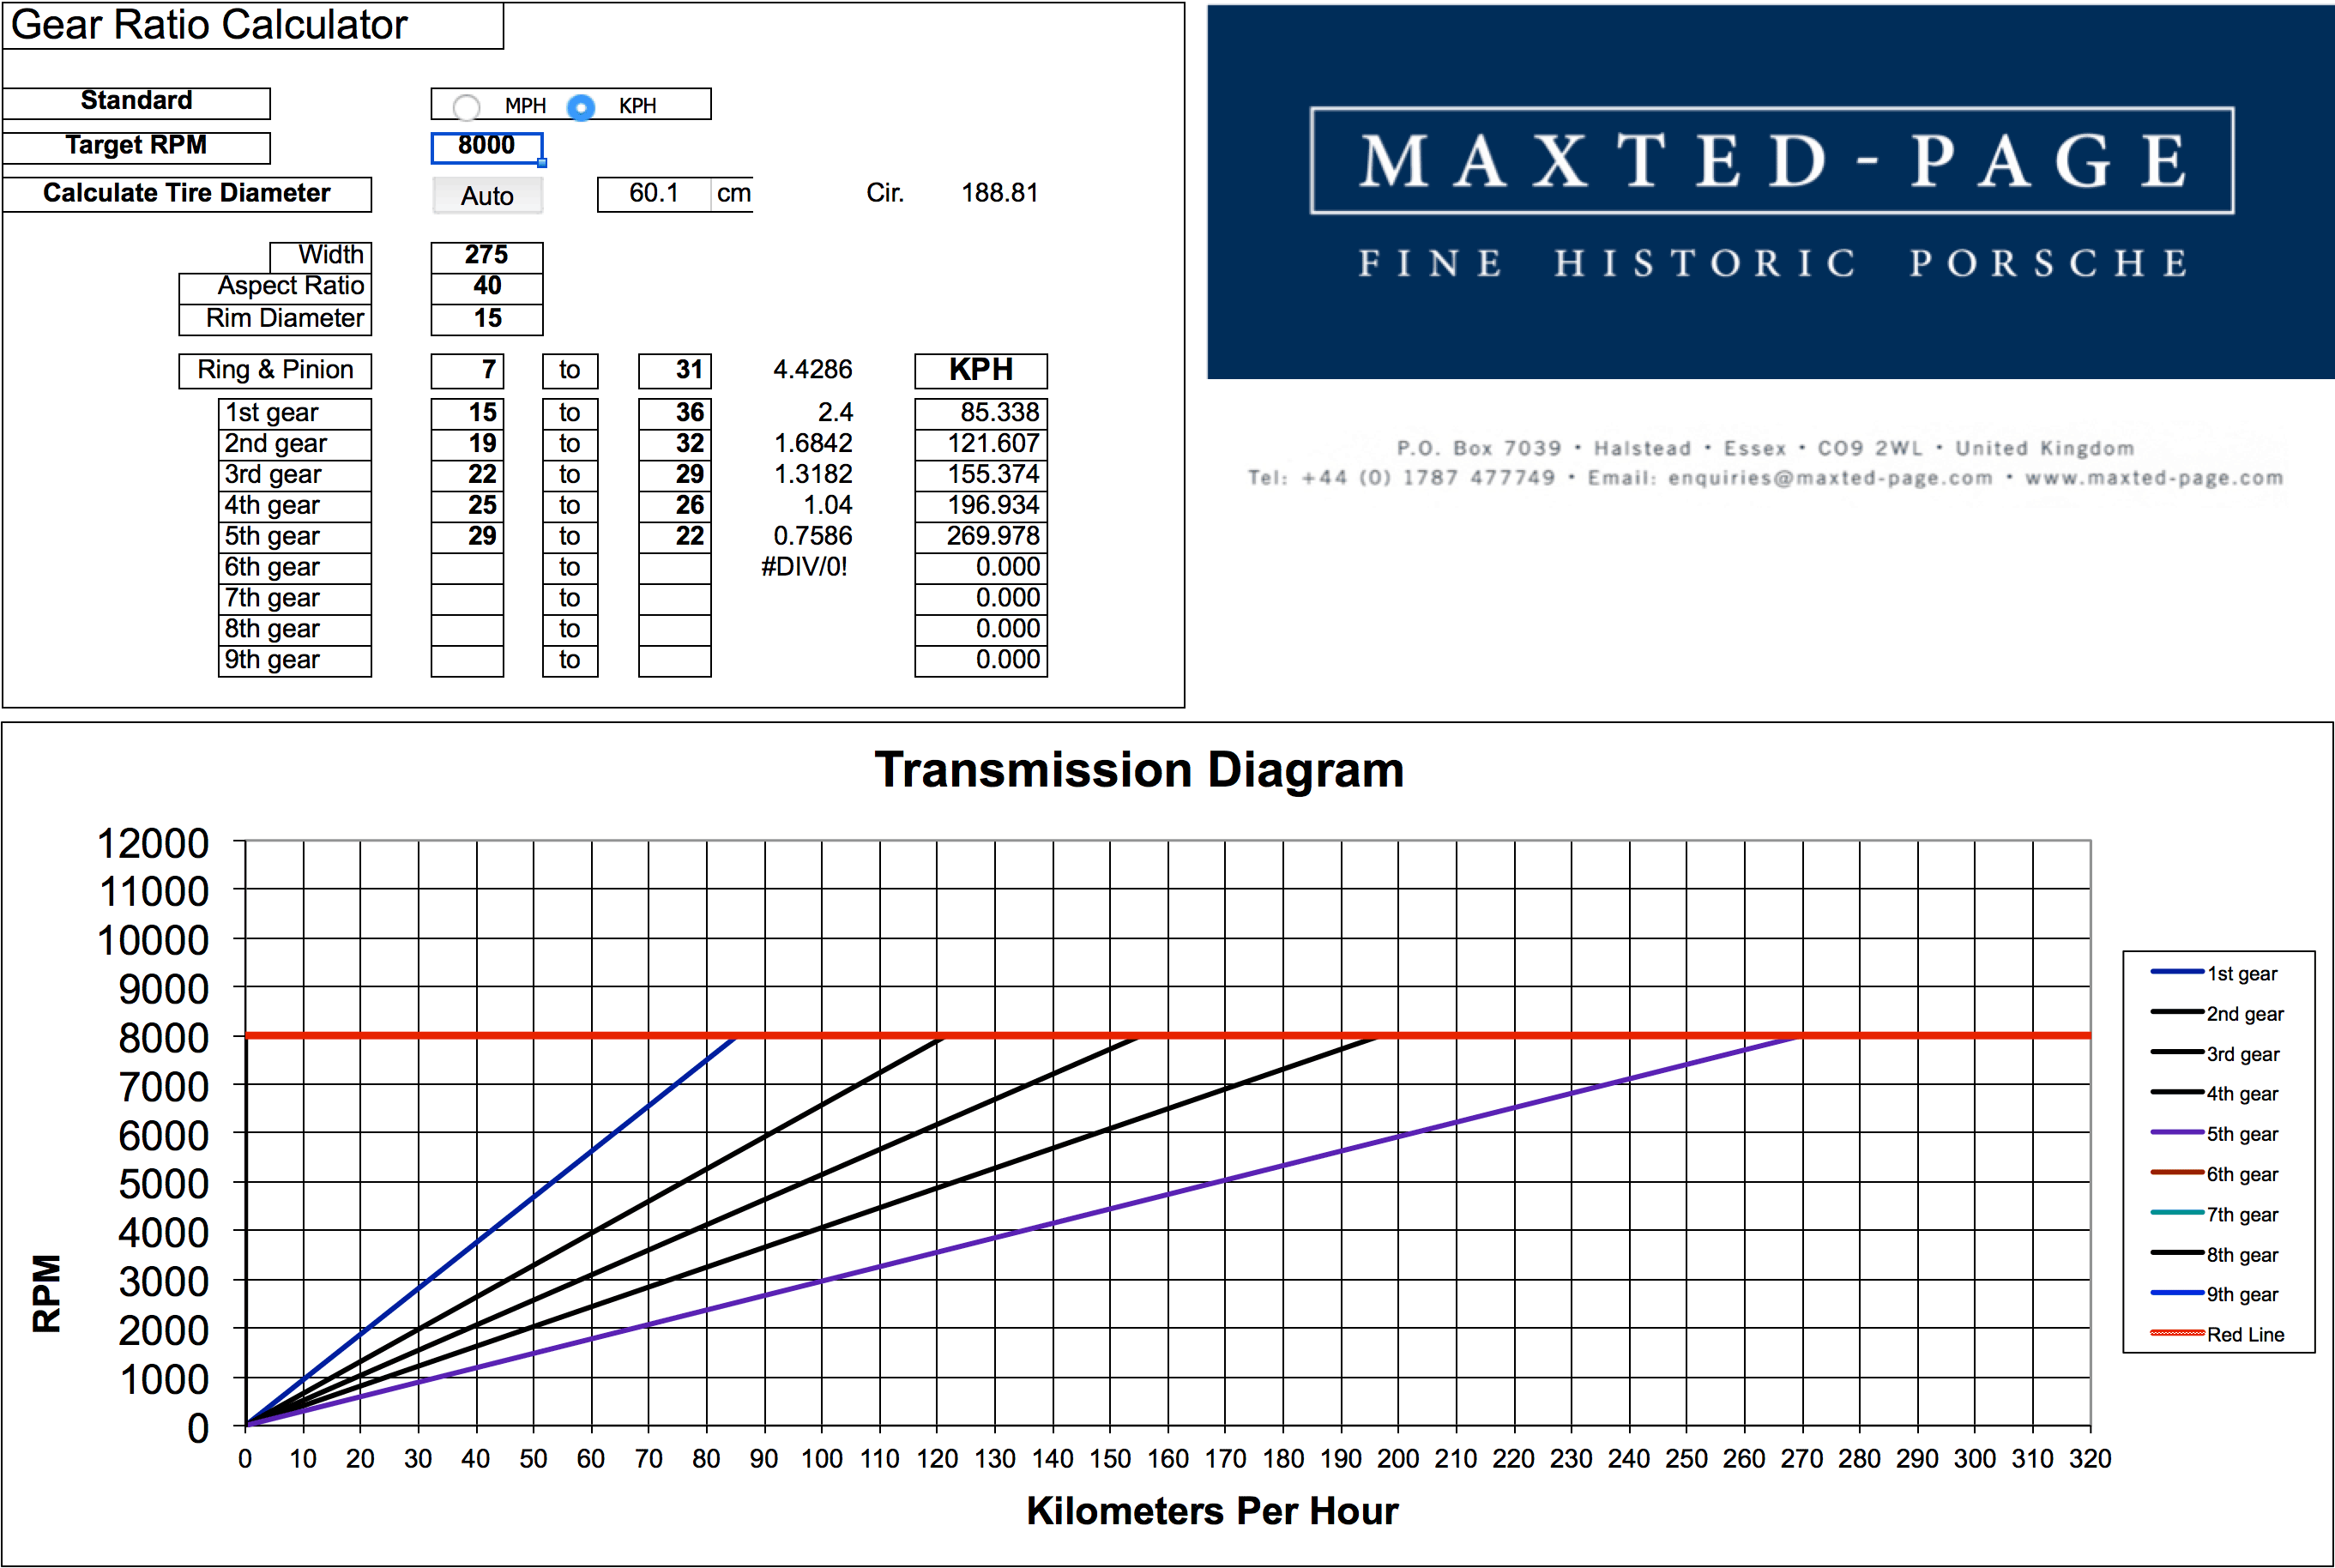 Maxted-Page Porsche Gear Ratio Transmission Diagram